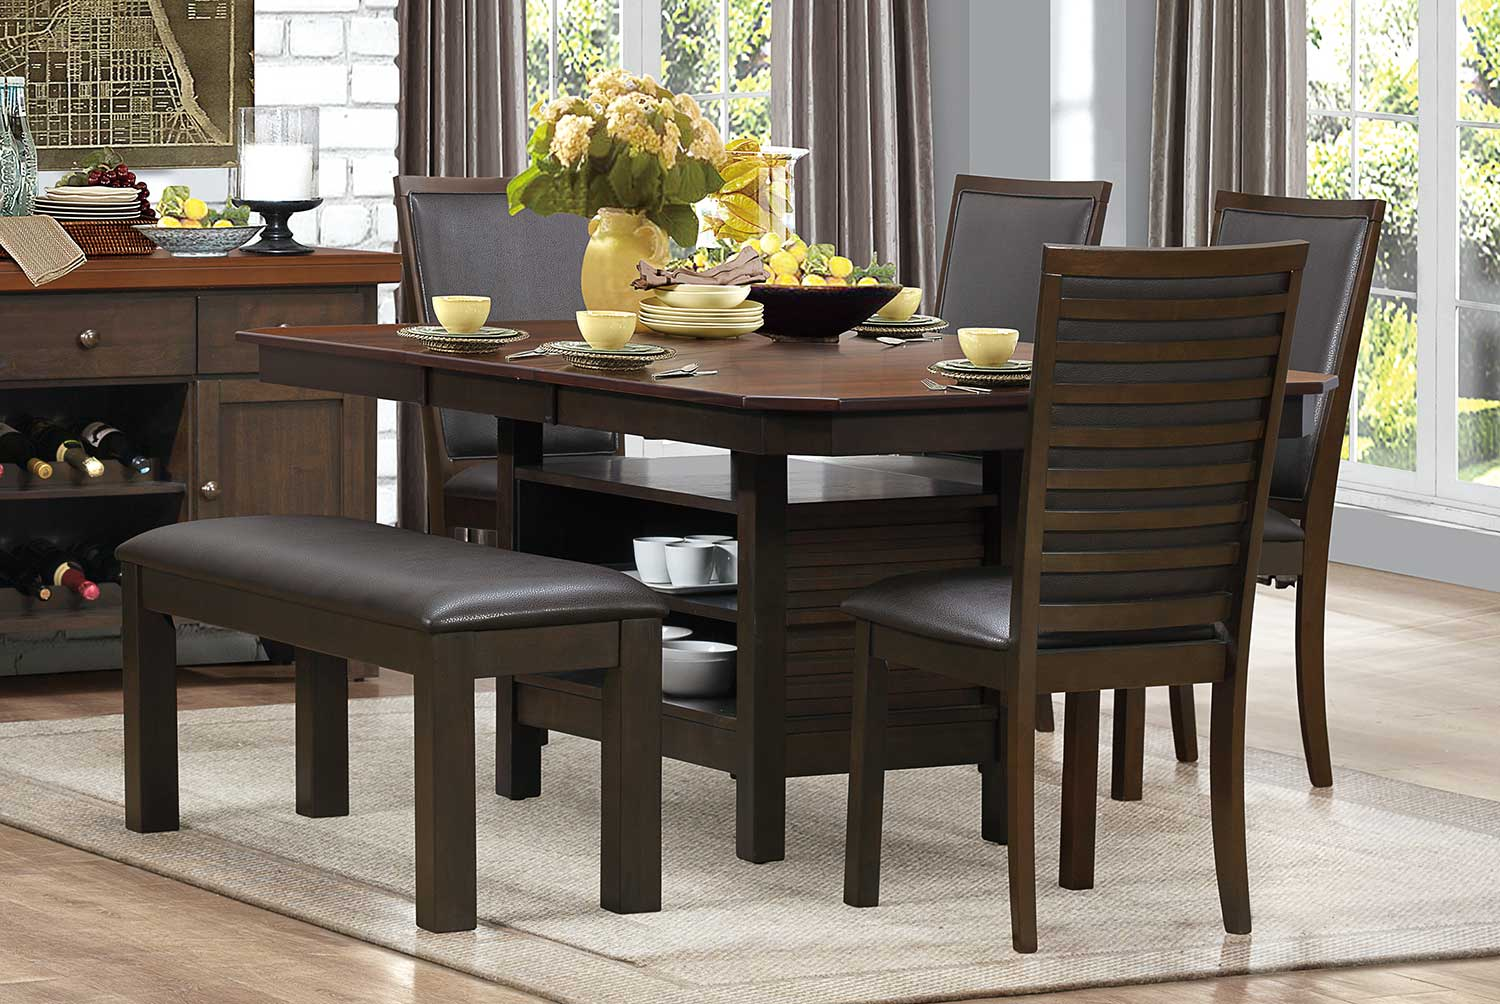 Homelegance Corliss Dining Set - Dark Brown